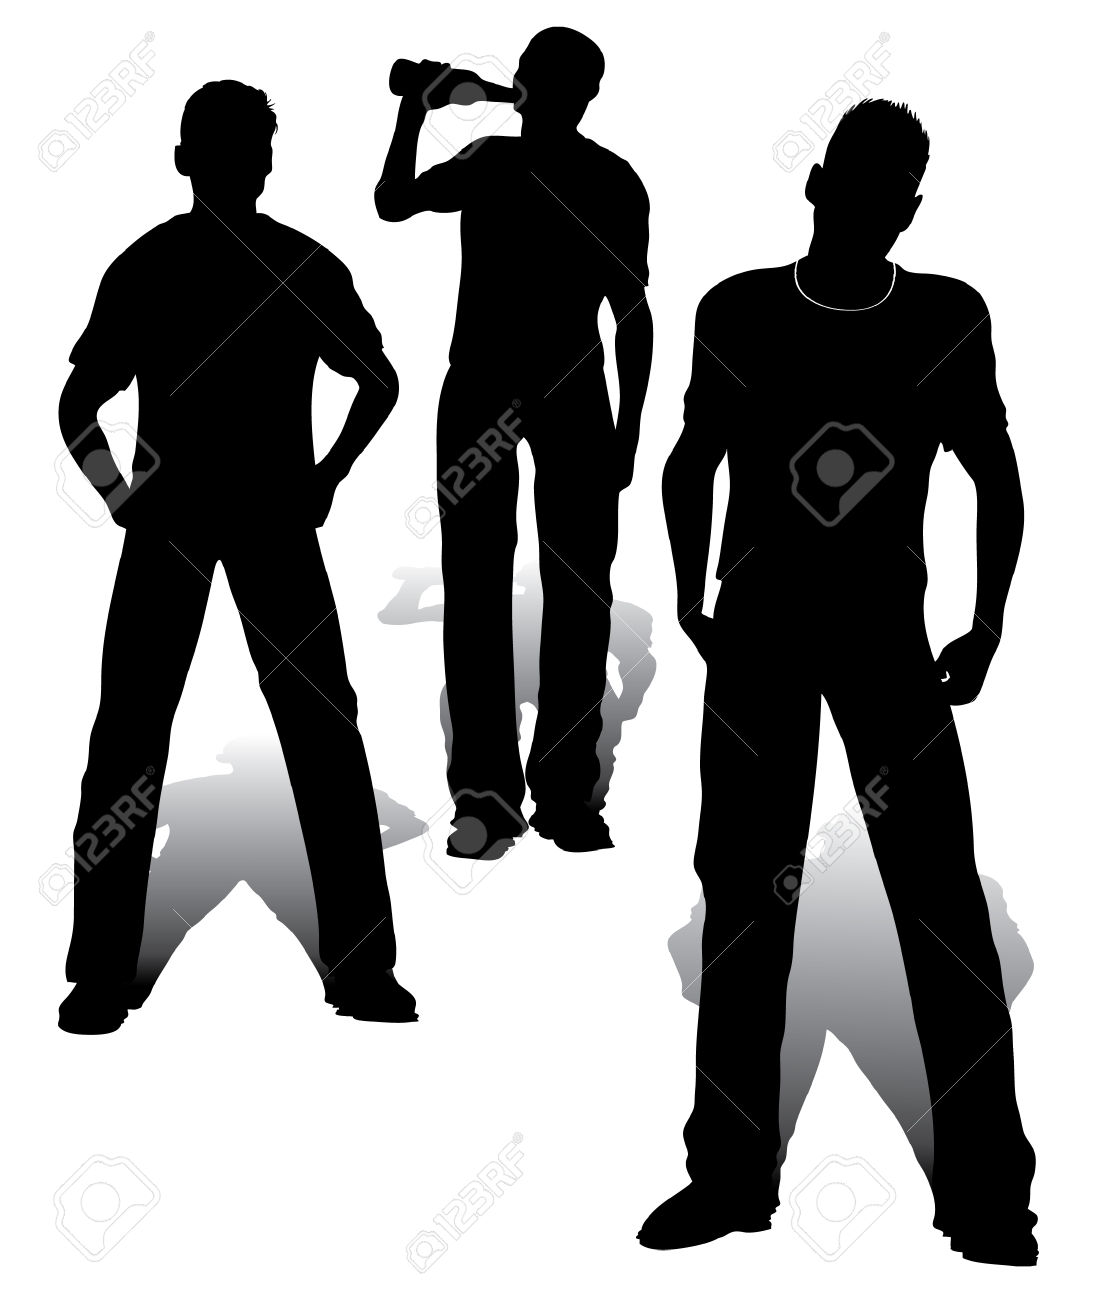 Gangs clipart banner royalty free download Gang clipart 7 » Clipart Station banner royalty free download